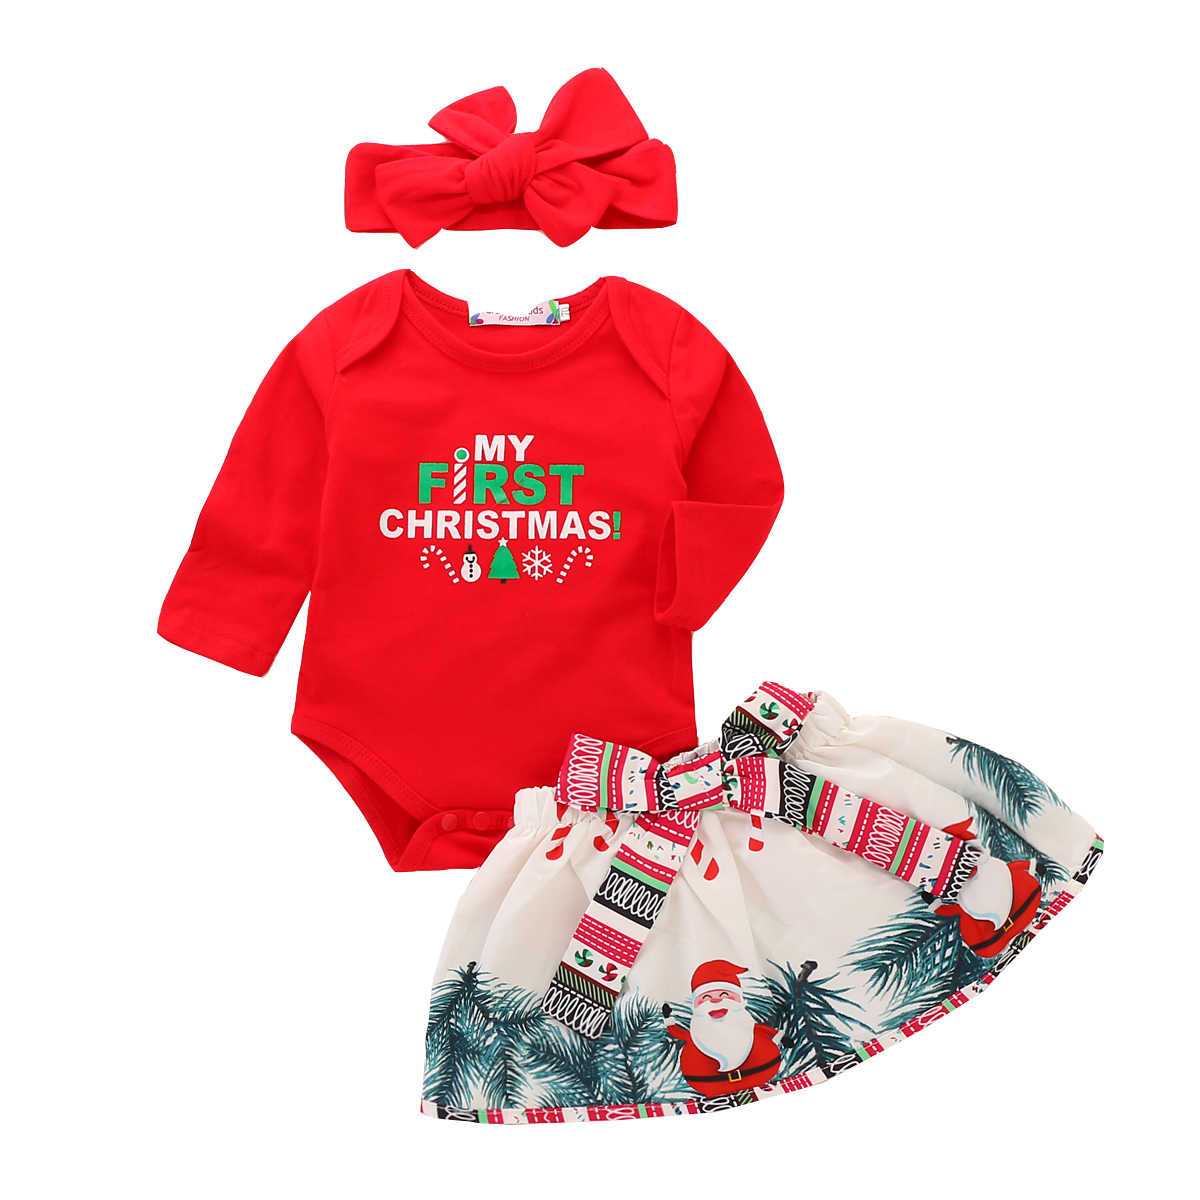 My First Christmas Girl Fall Clothing Baby Girl Clothes 3Pcs Letter Print Bodysuit+Bow Skirt+Headband Baby Christmas Outfits D50